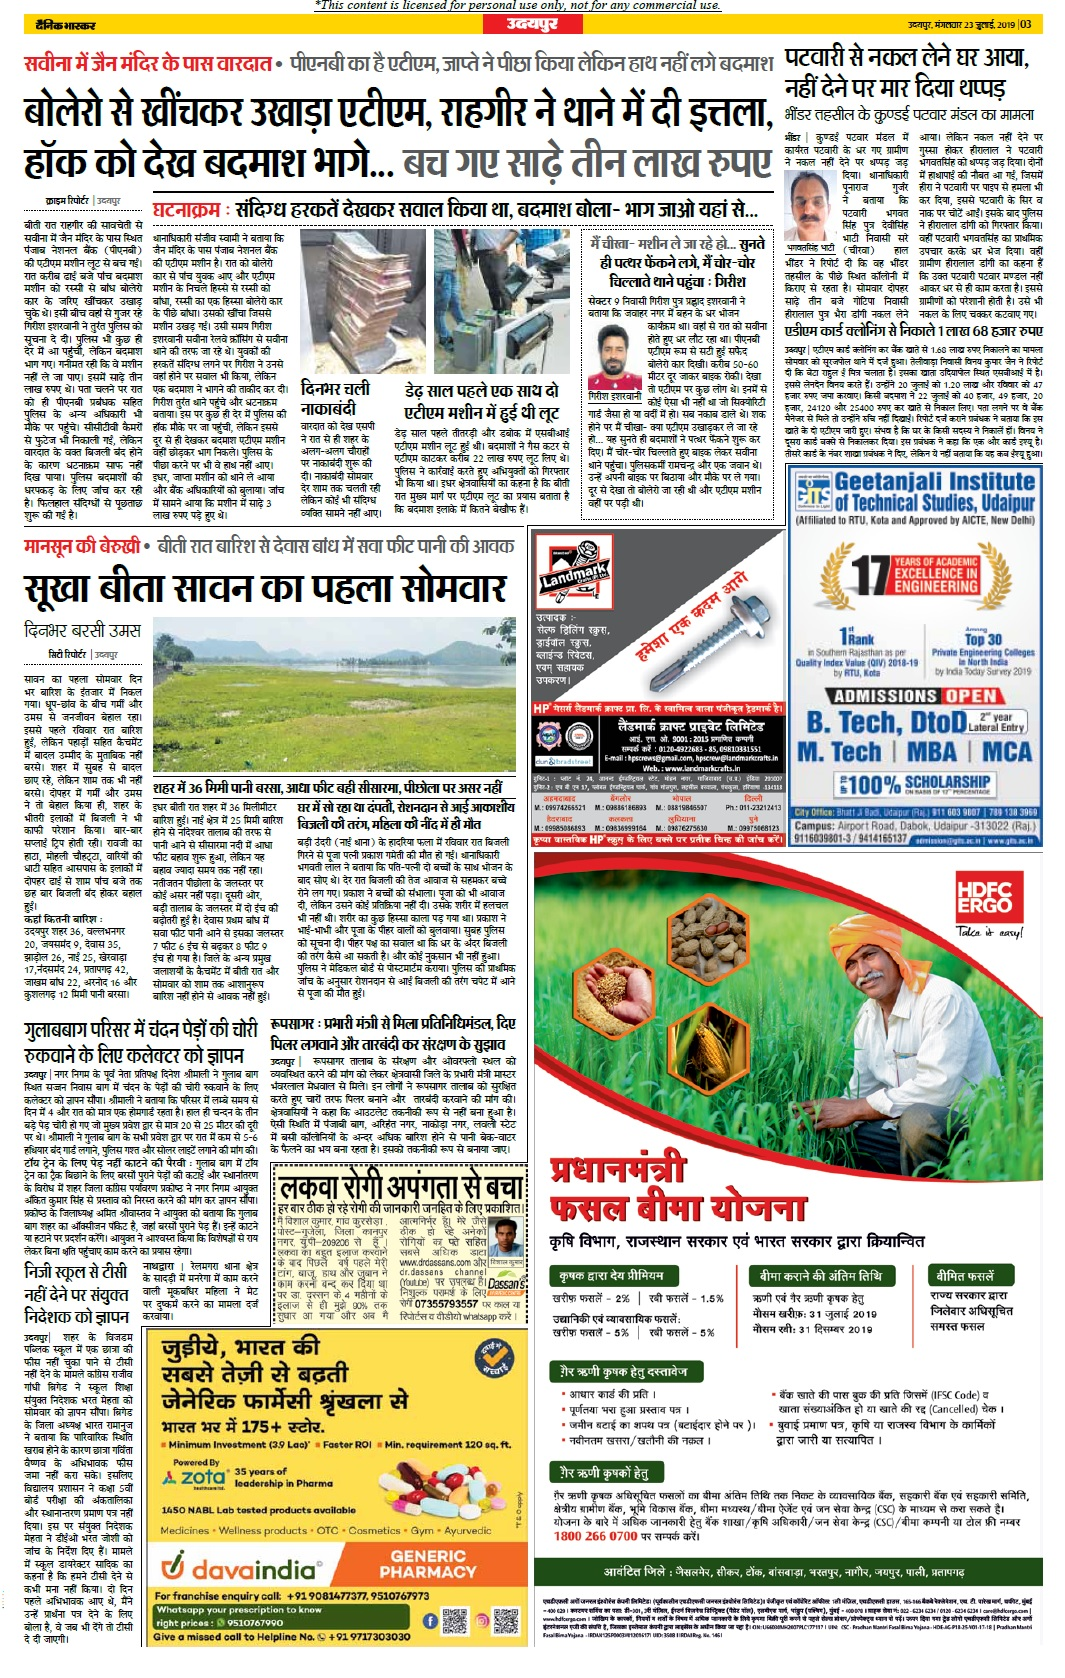 press ad in rajasthan dainik bhaskar